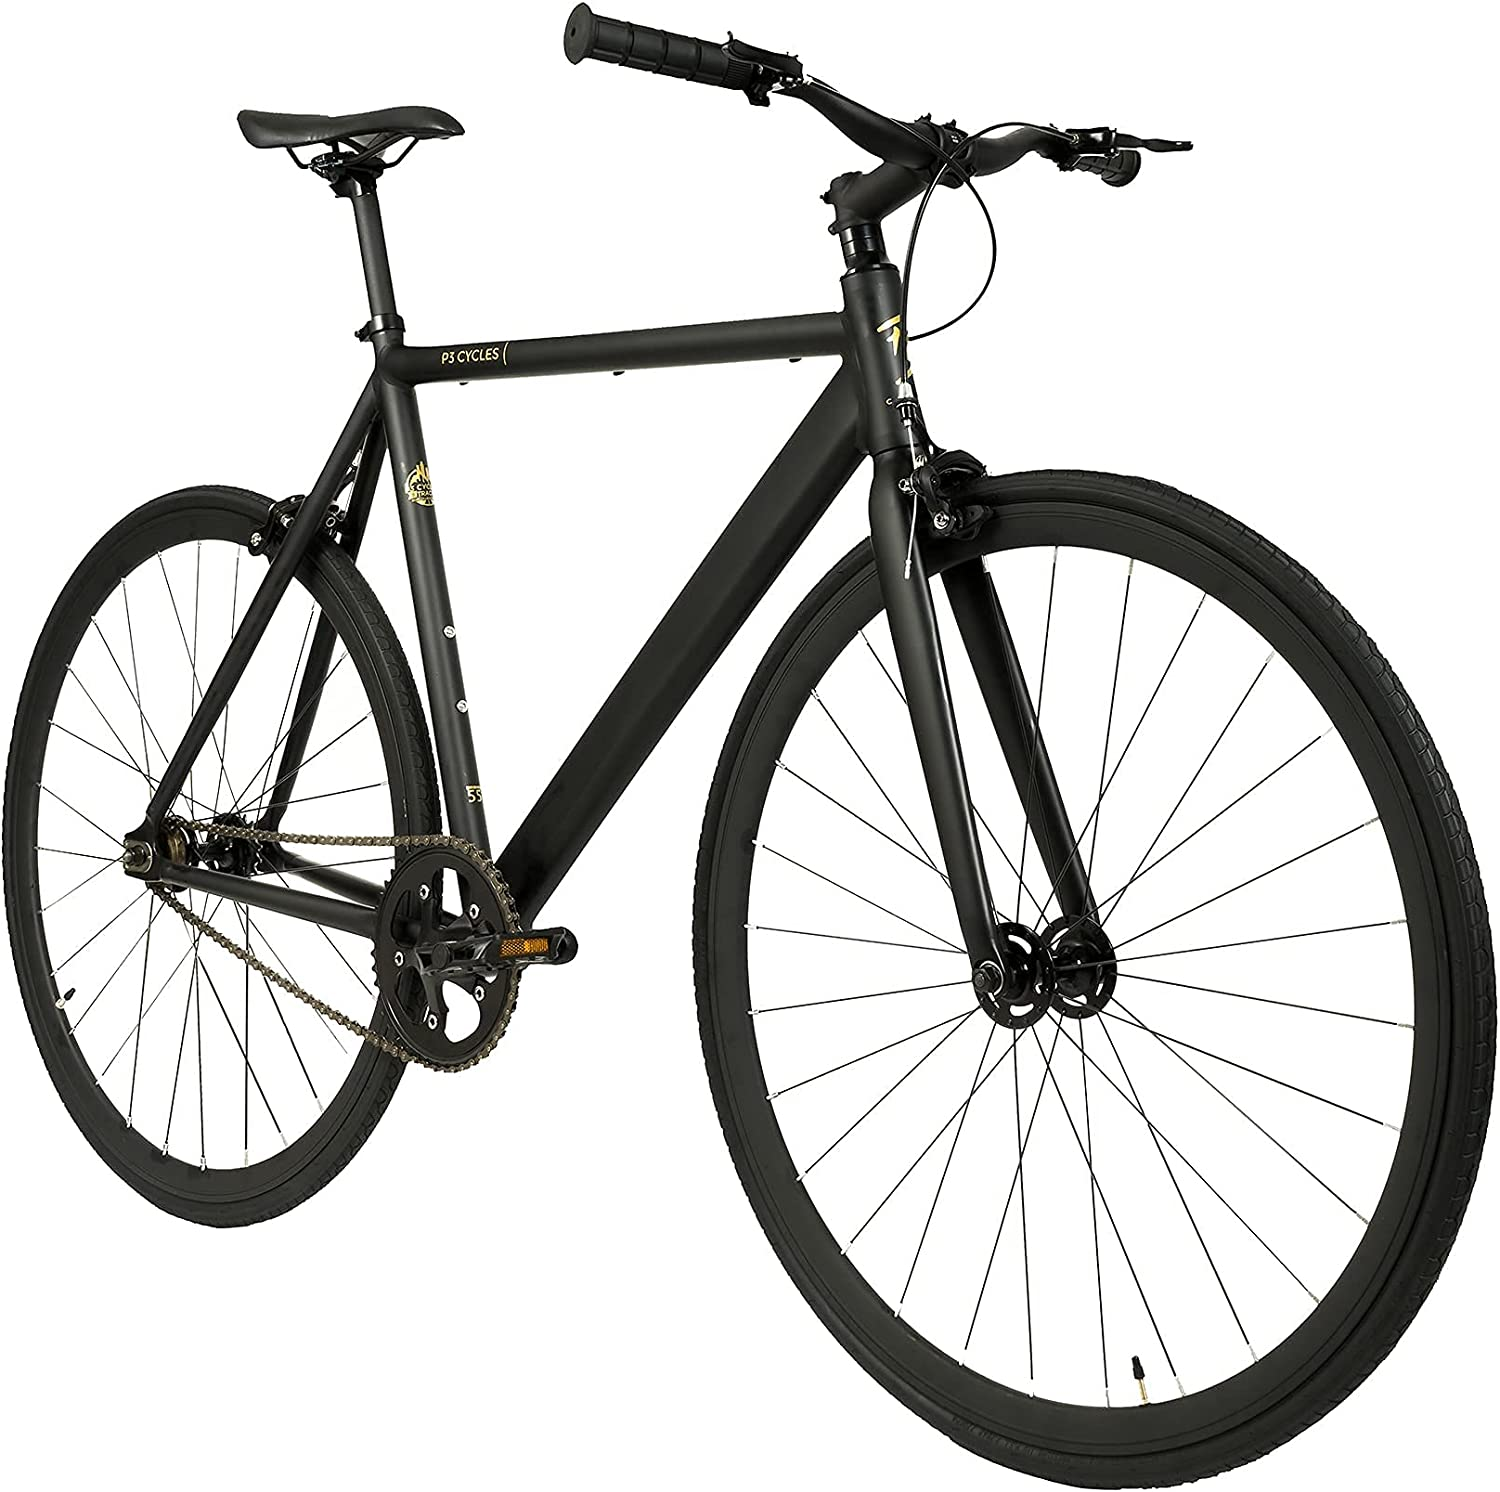 P3 Sales of SALE items from new works Cycles Track Aluminum Single Urban Bike Fixie 4 years warranty Speed